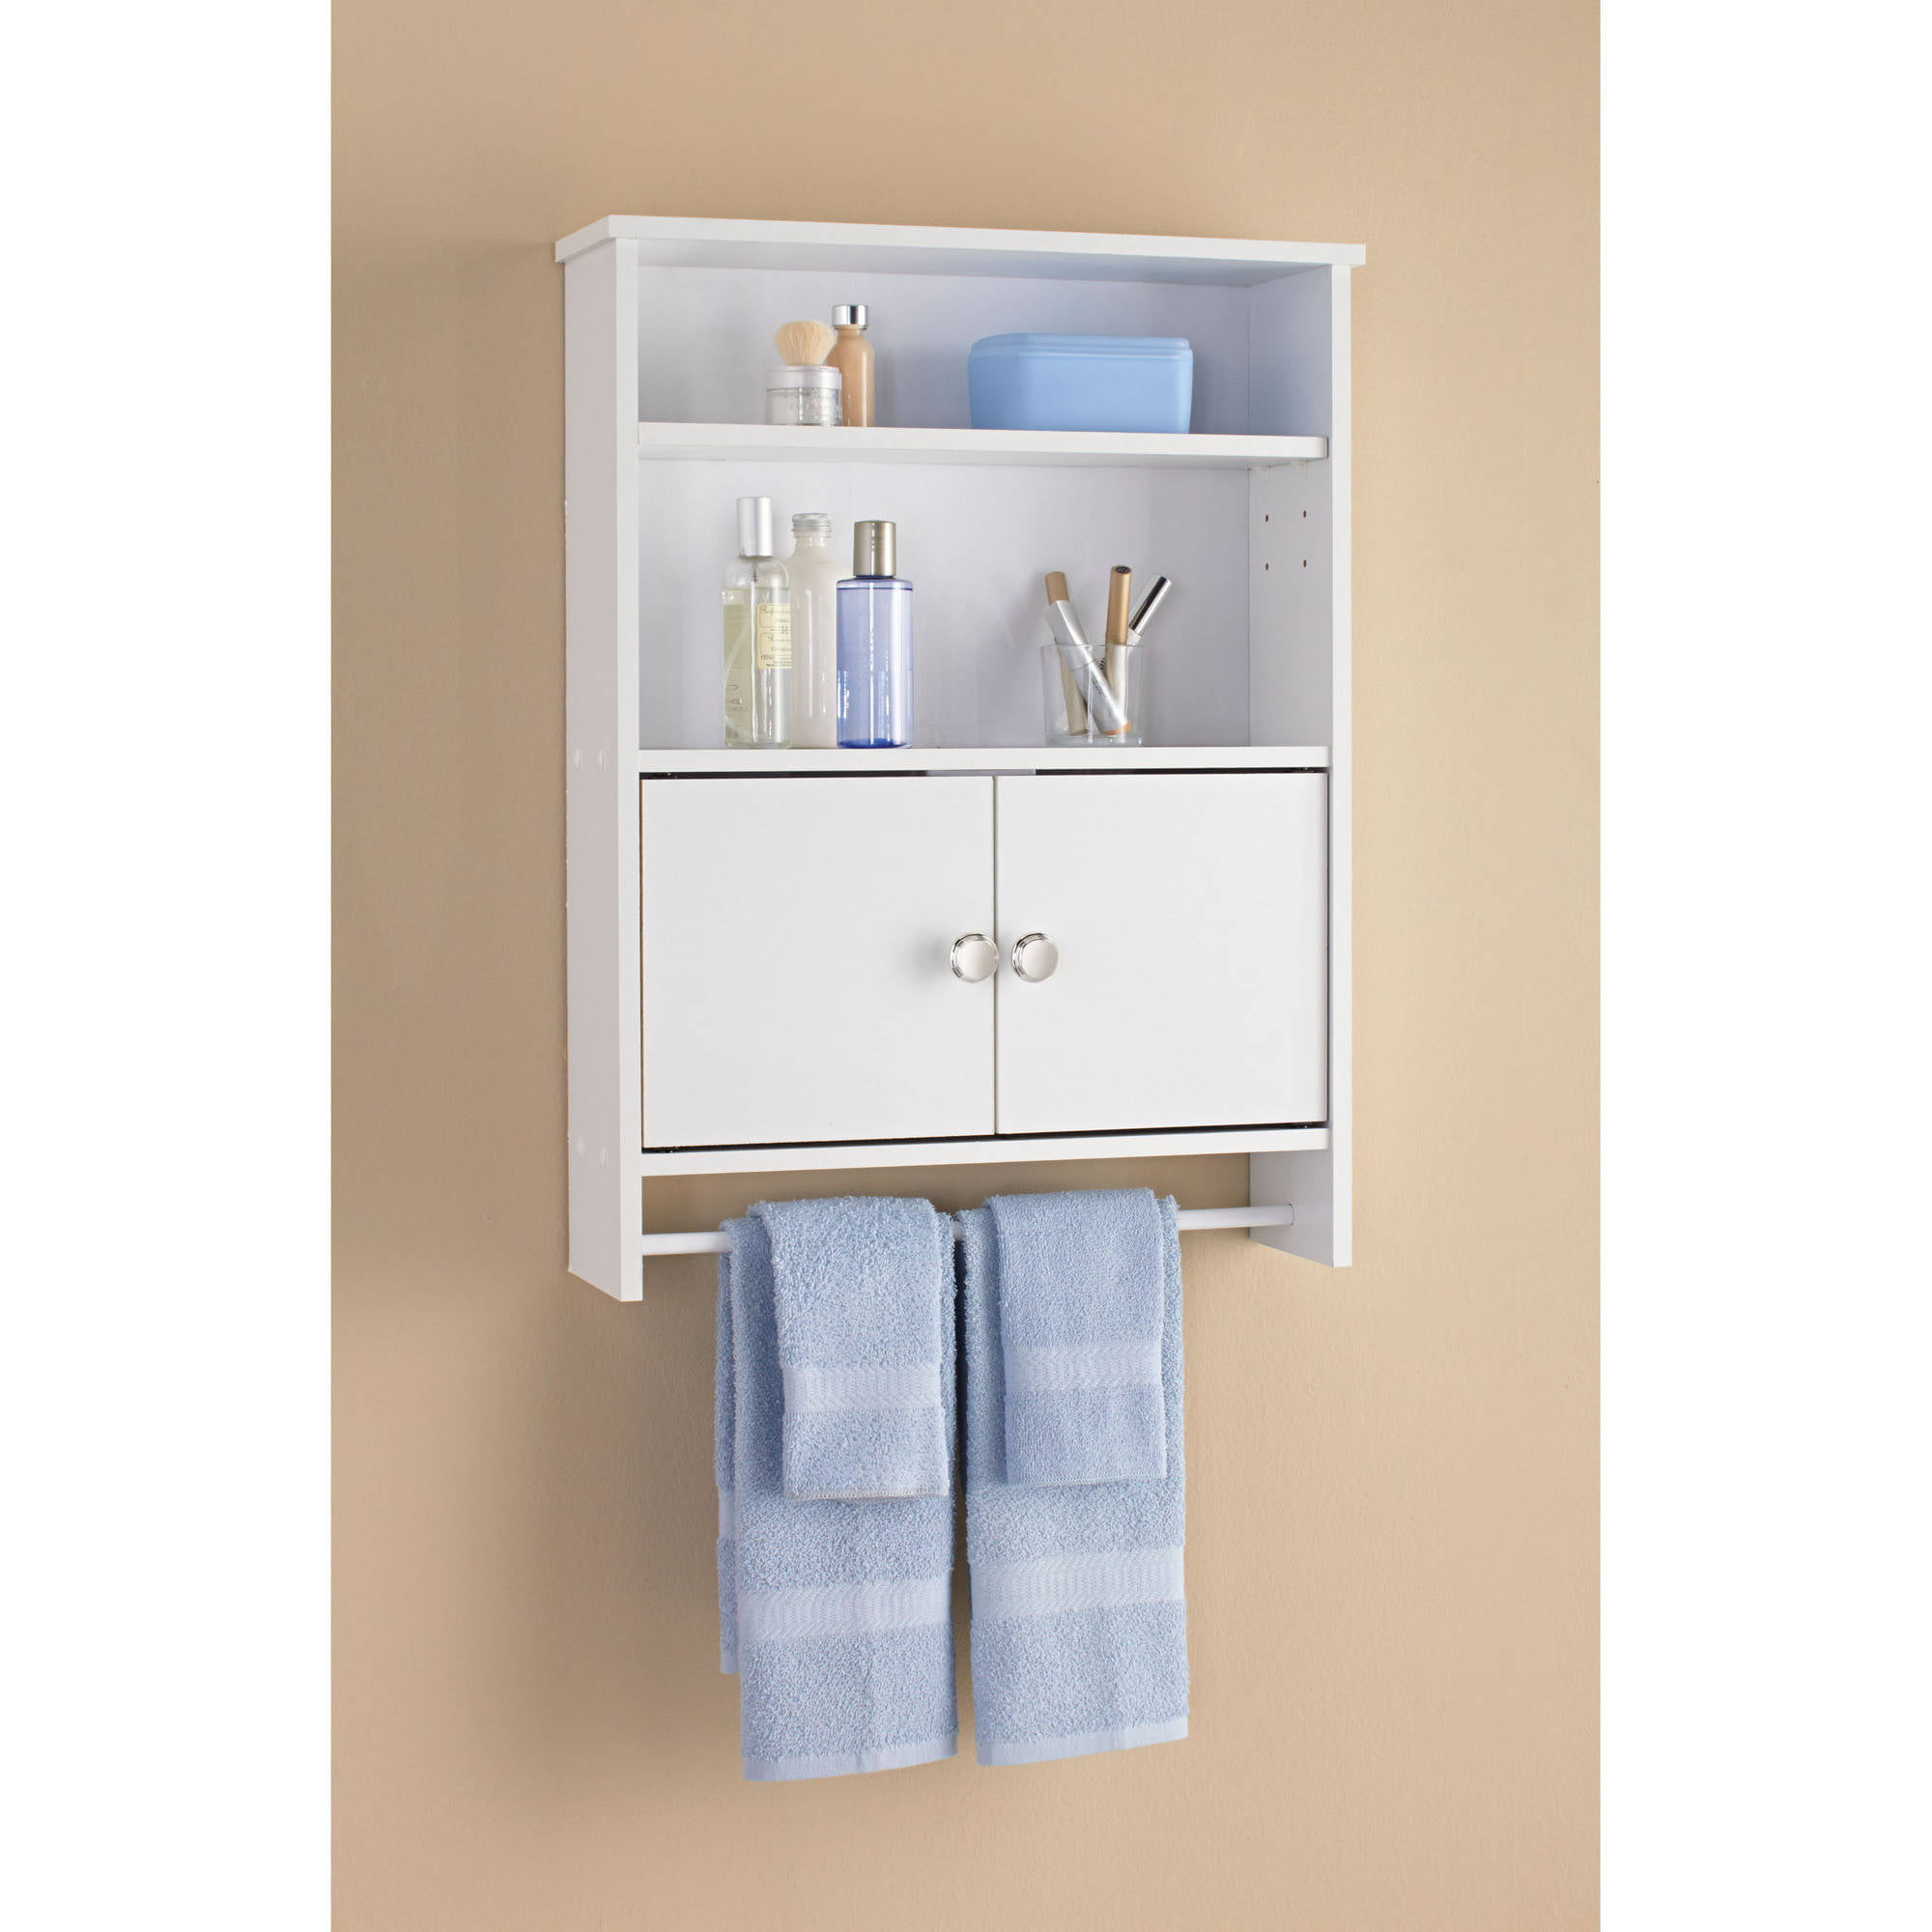 espresso bathroom shelf space saver walmartcom